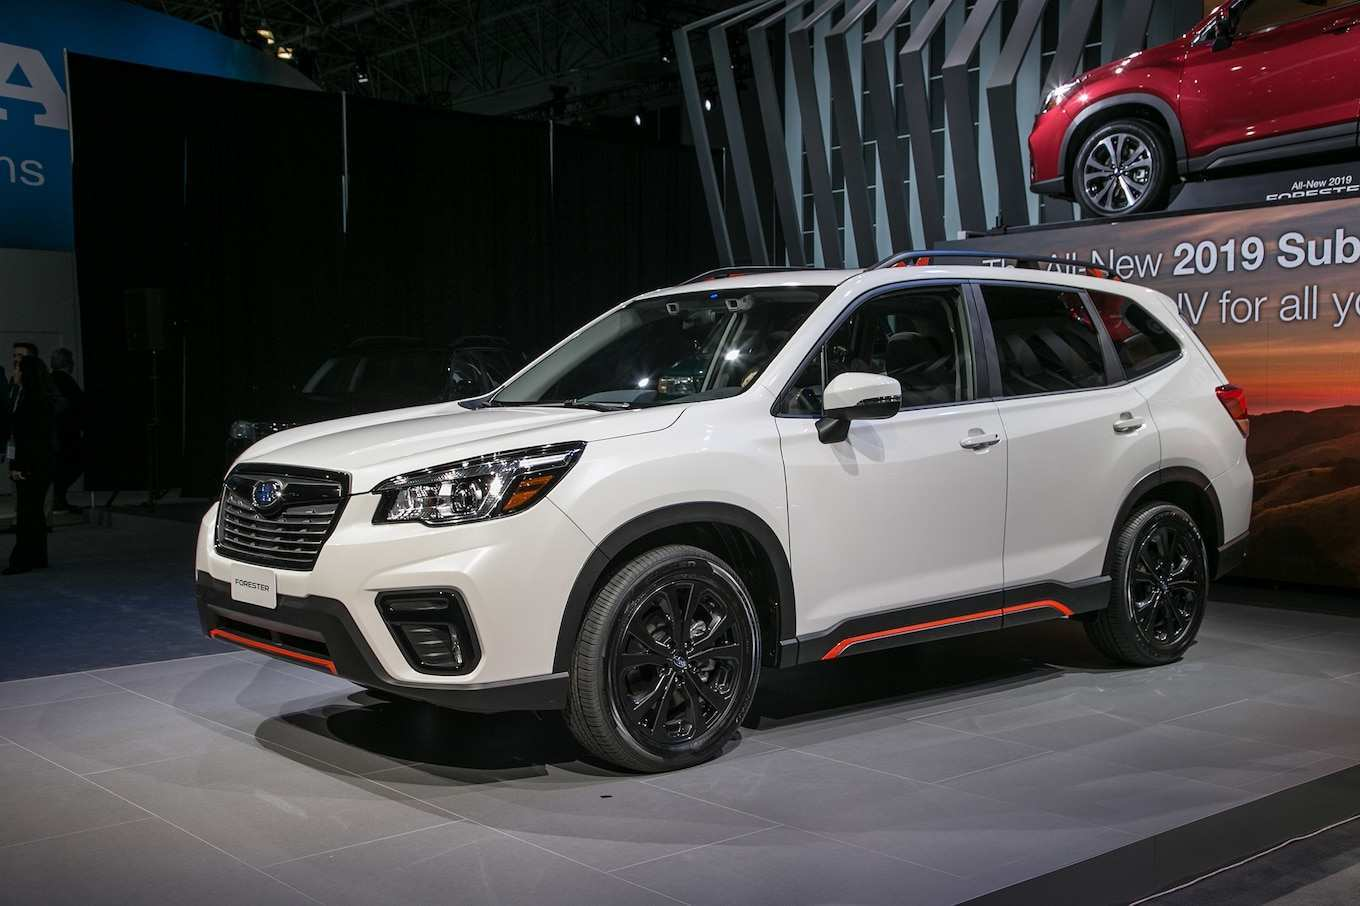 20 Great The 2019 Subaru Forester Sport Concept Rumors with The 2019 Subaru Forester Sport Concept